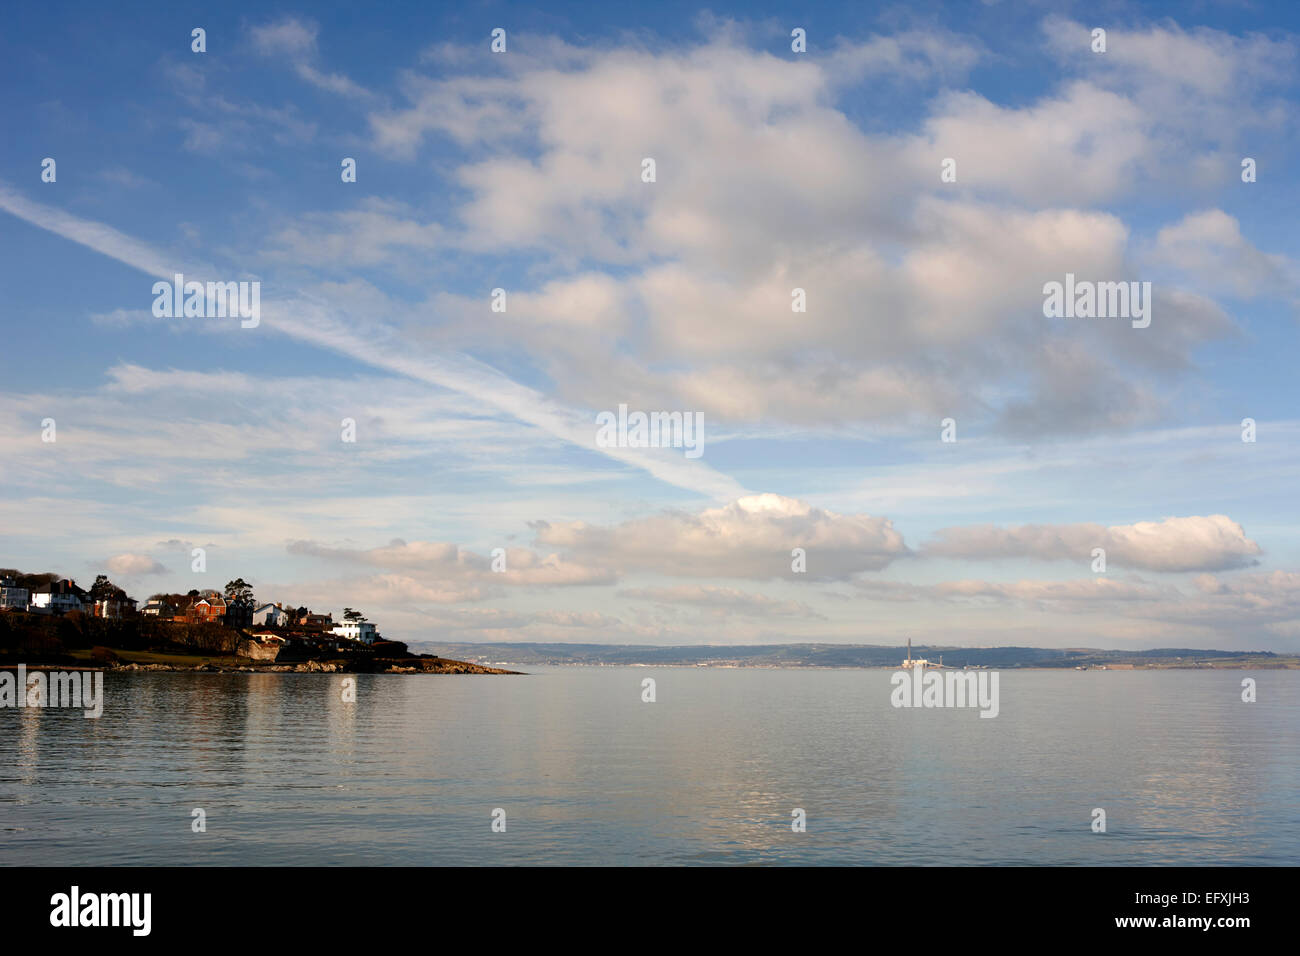 belfast lough foreshore at pickie bangor Northern Ireland - Stock Image